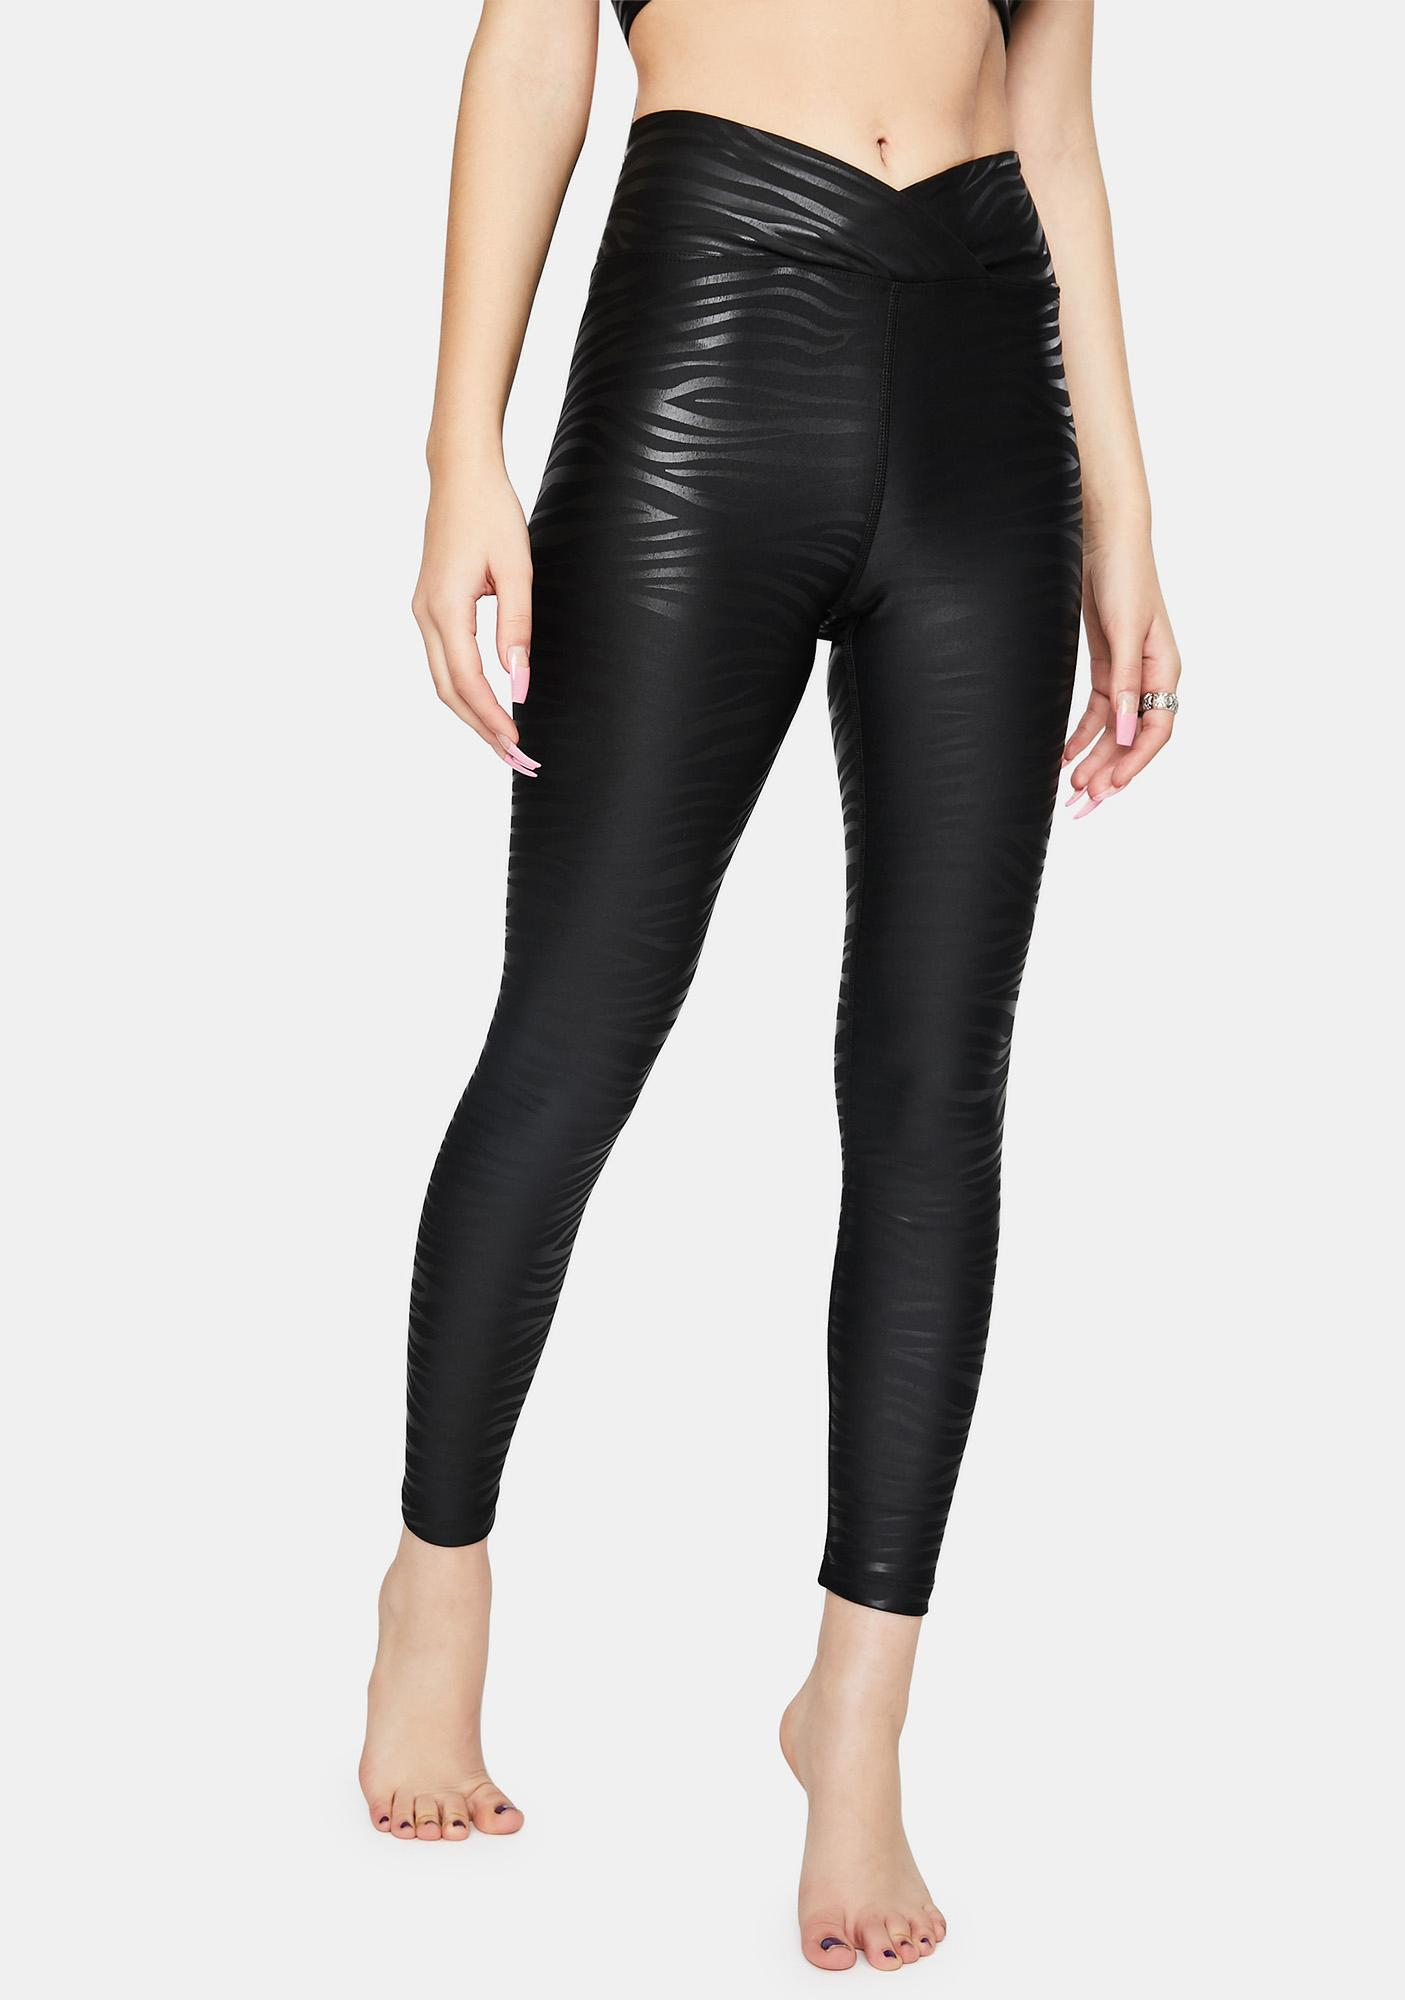 Year Of Ours Black Tiger Foil Veronica Leggings